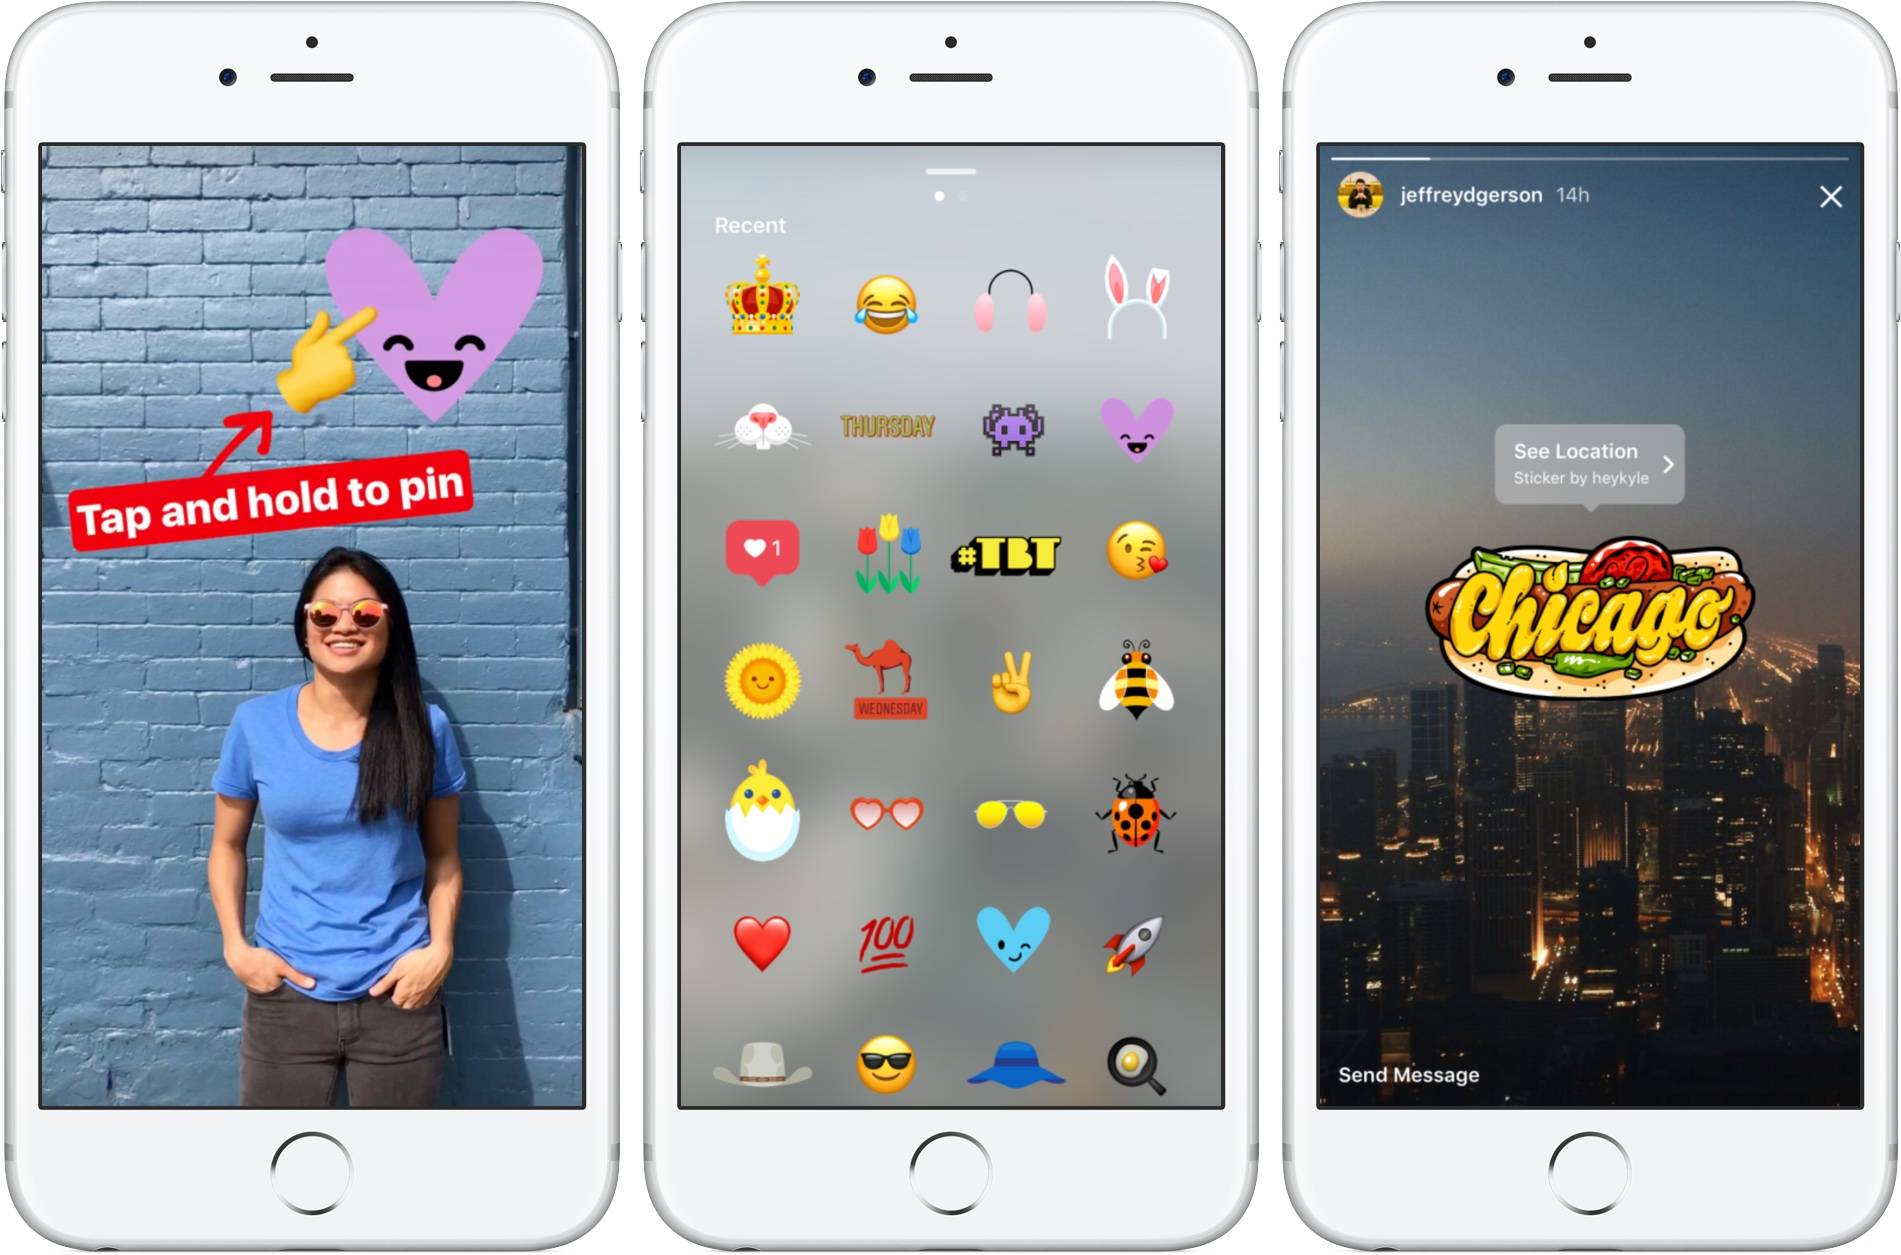 optimizar las stories de Instagram: stickers